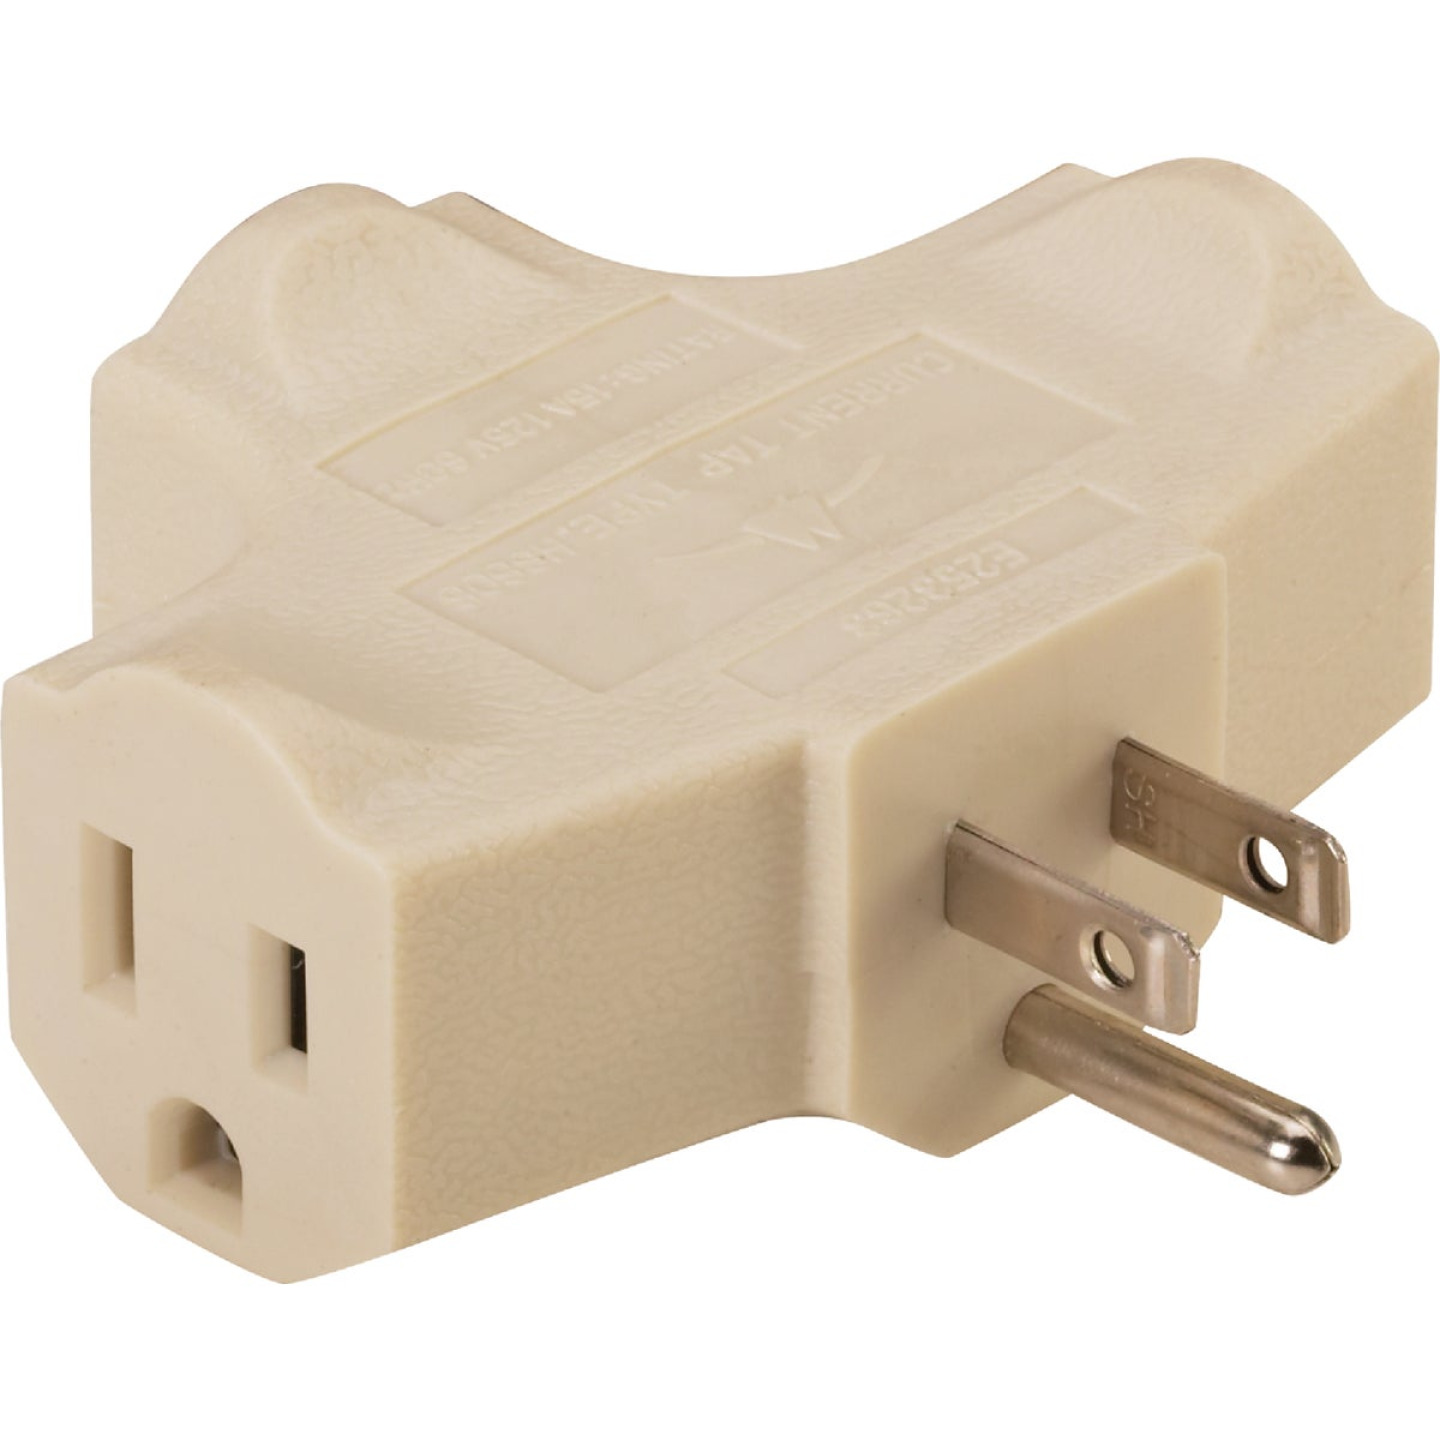 Do it Beige 15A 3-Outlet Tap Image 1